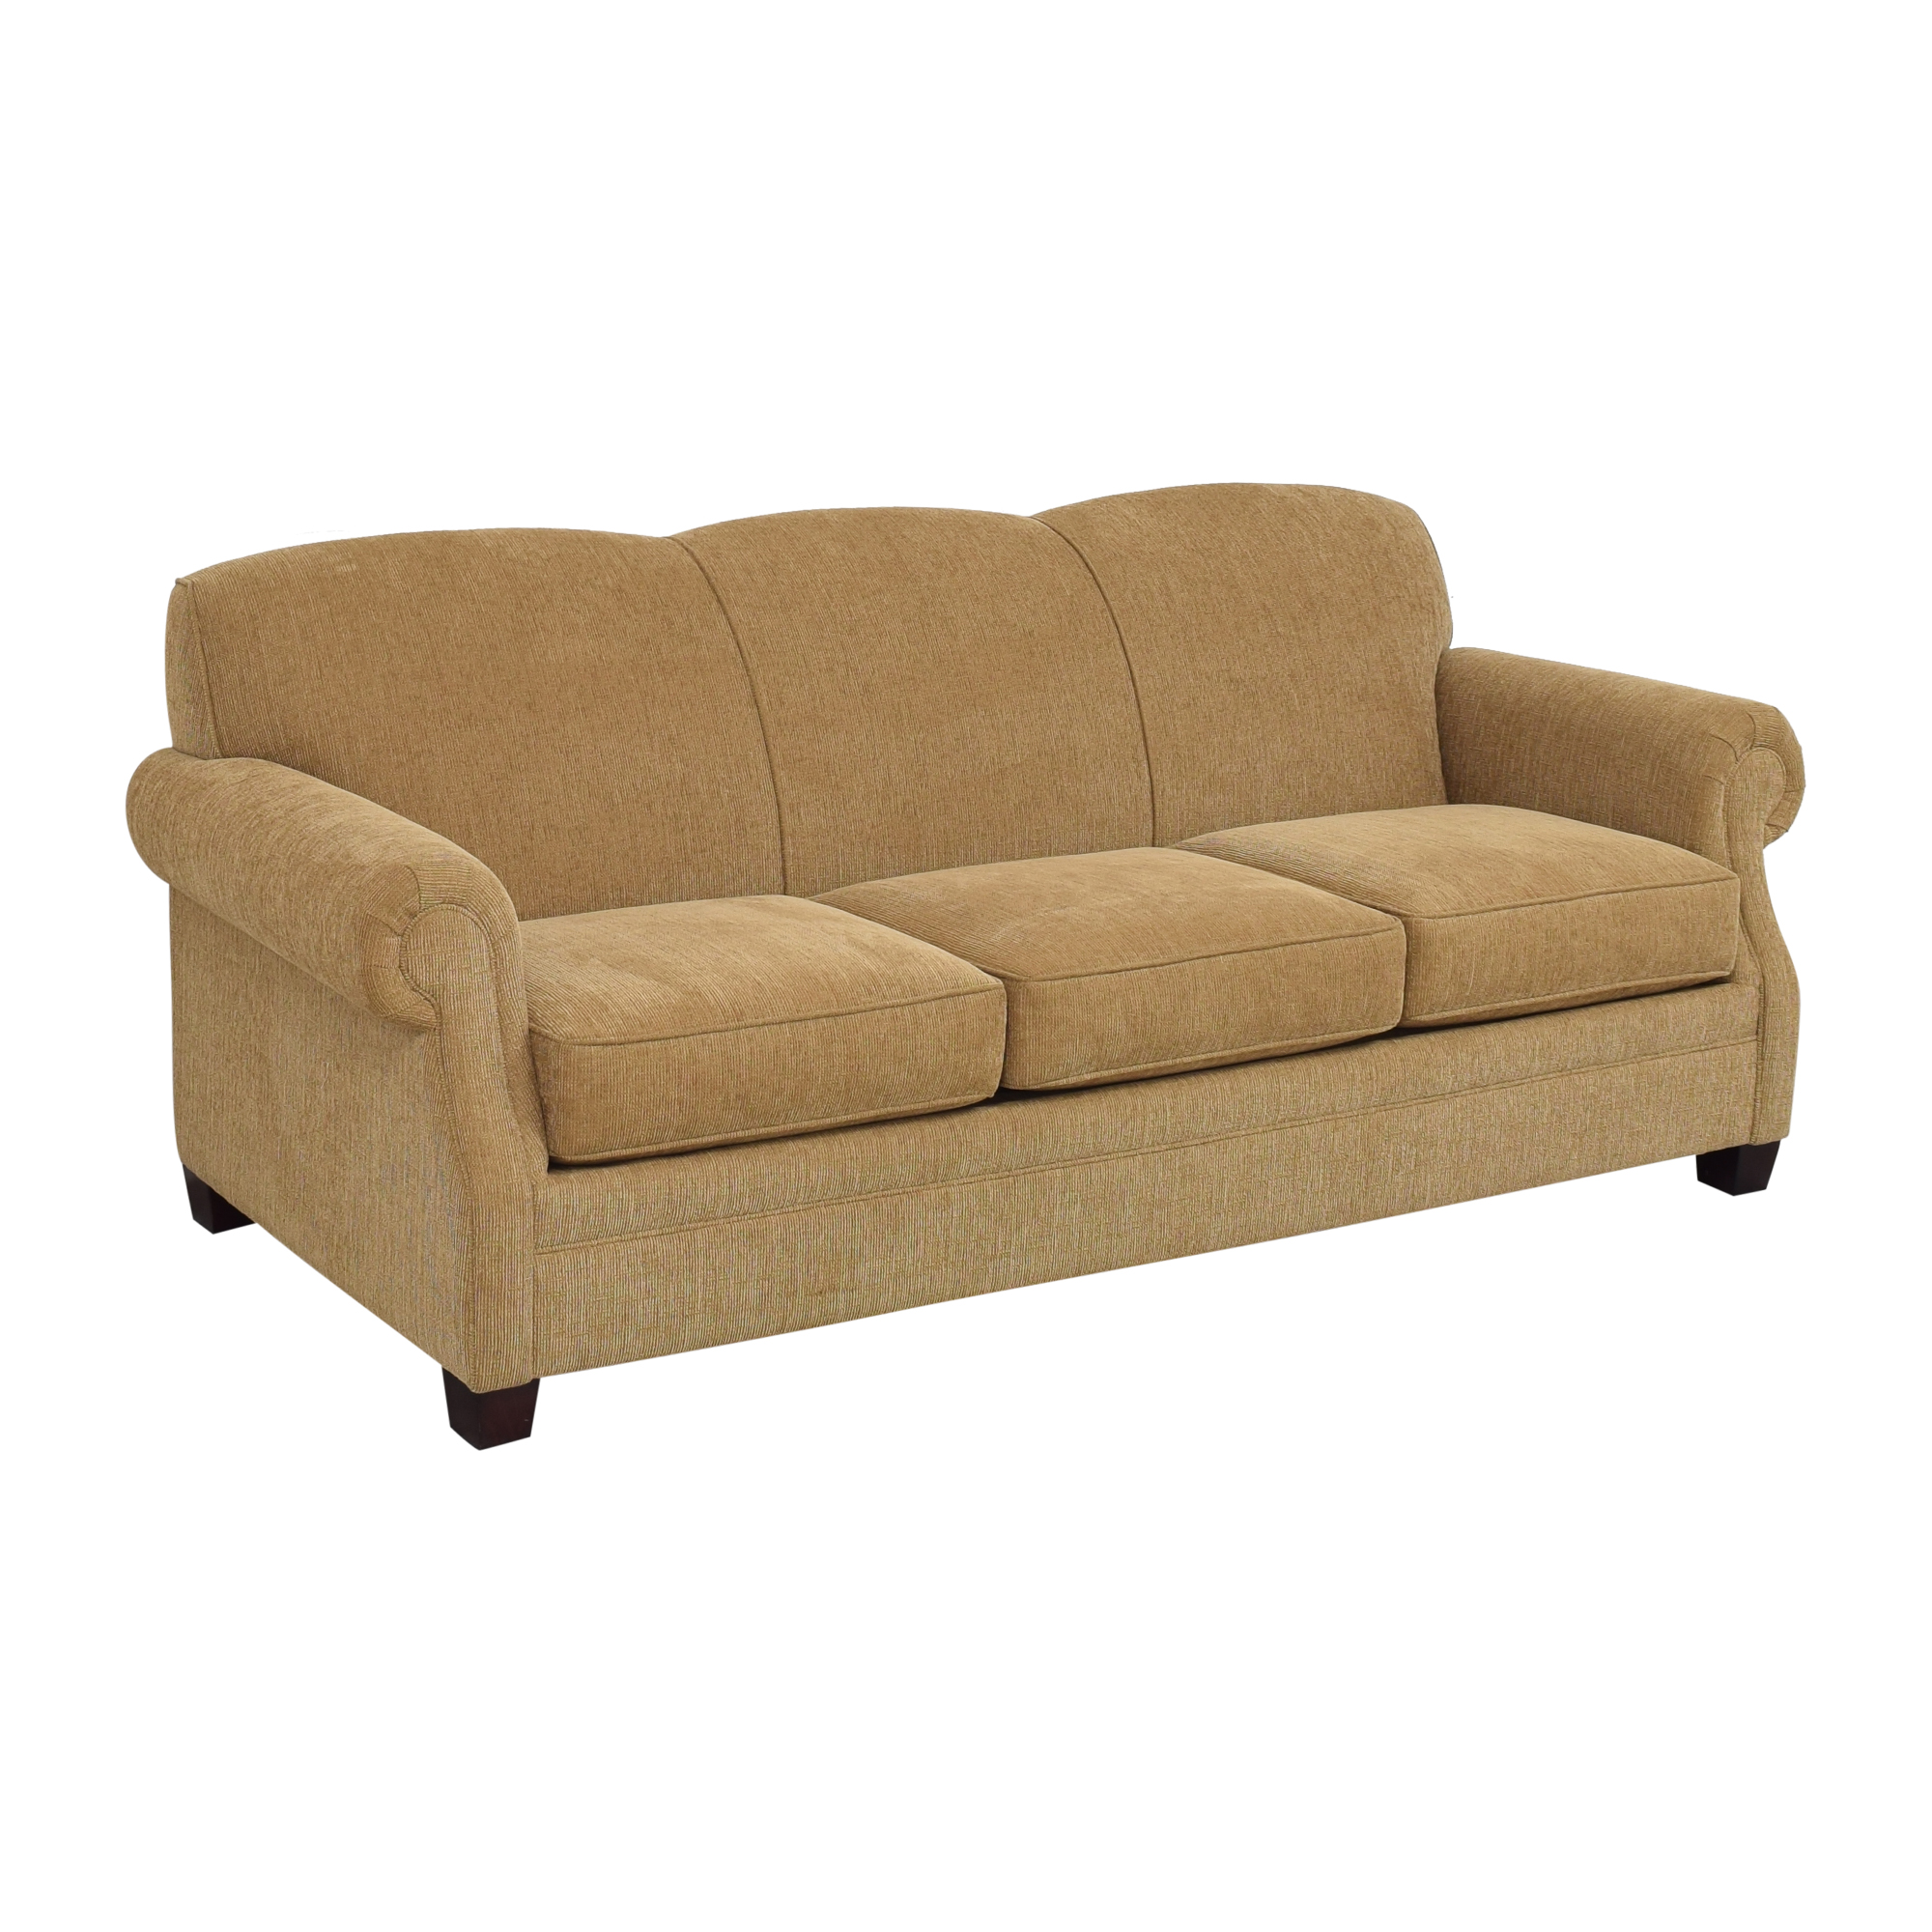 Bauhaus Furniture Bauhaus Furniture Wellington Roll Arm Sofa ct